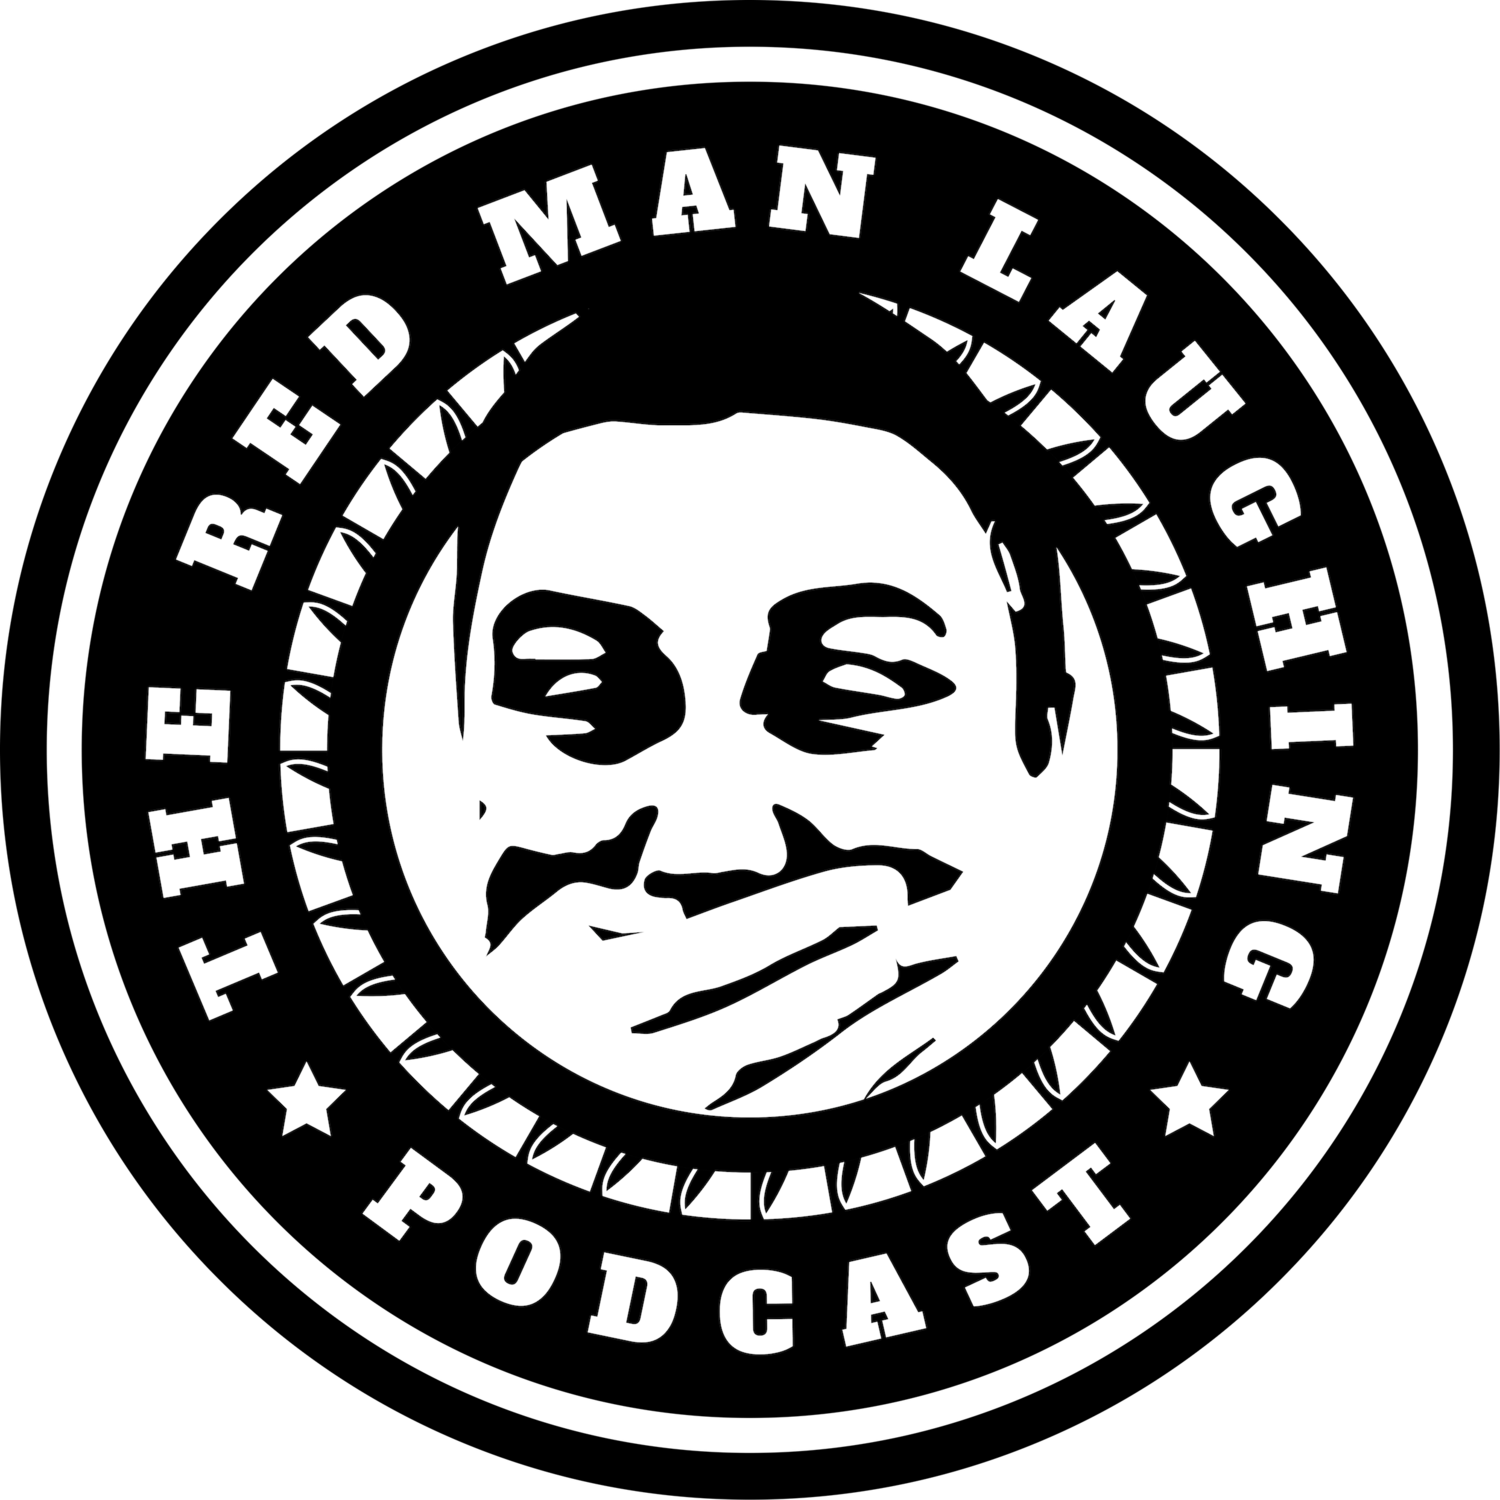 Colby Tootoosis Interview - In this episode of the Red Man Laughing podcast we have a sit down, featured chat with Colby Tootoosis. Colby has made social media & mainstream news this week as the young man that